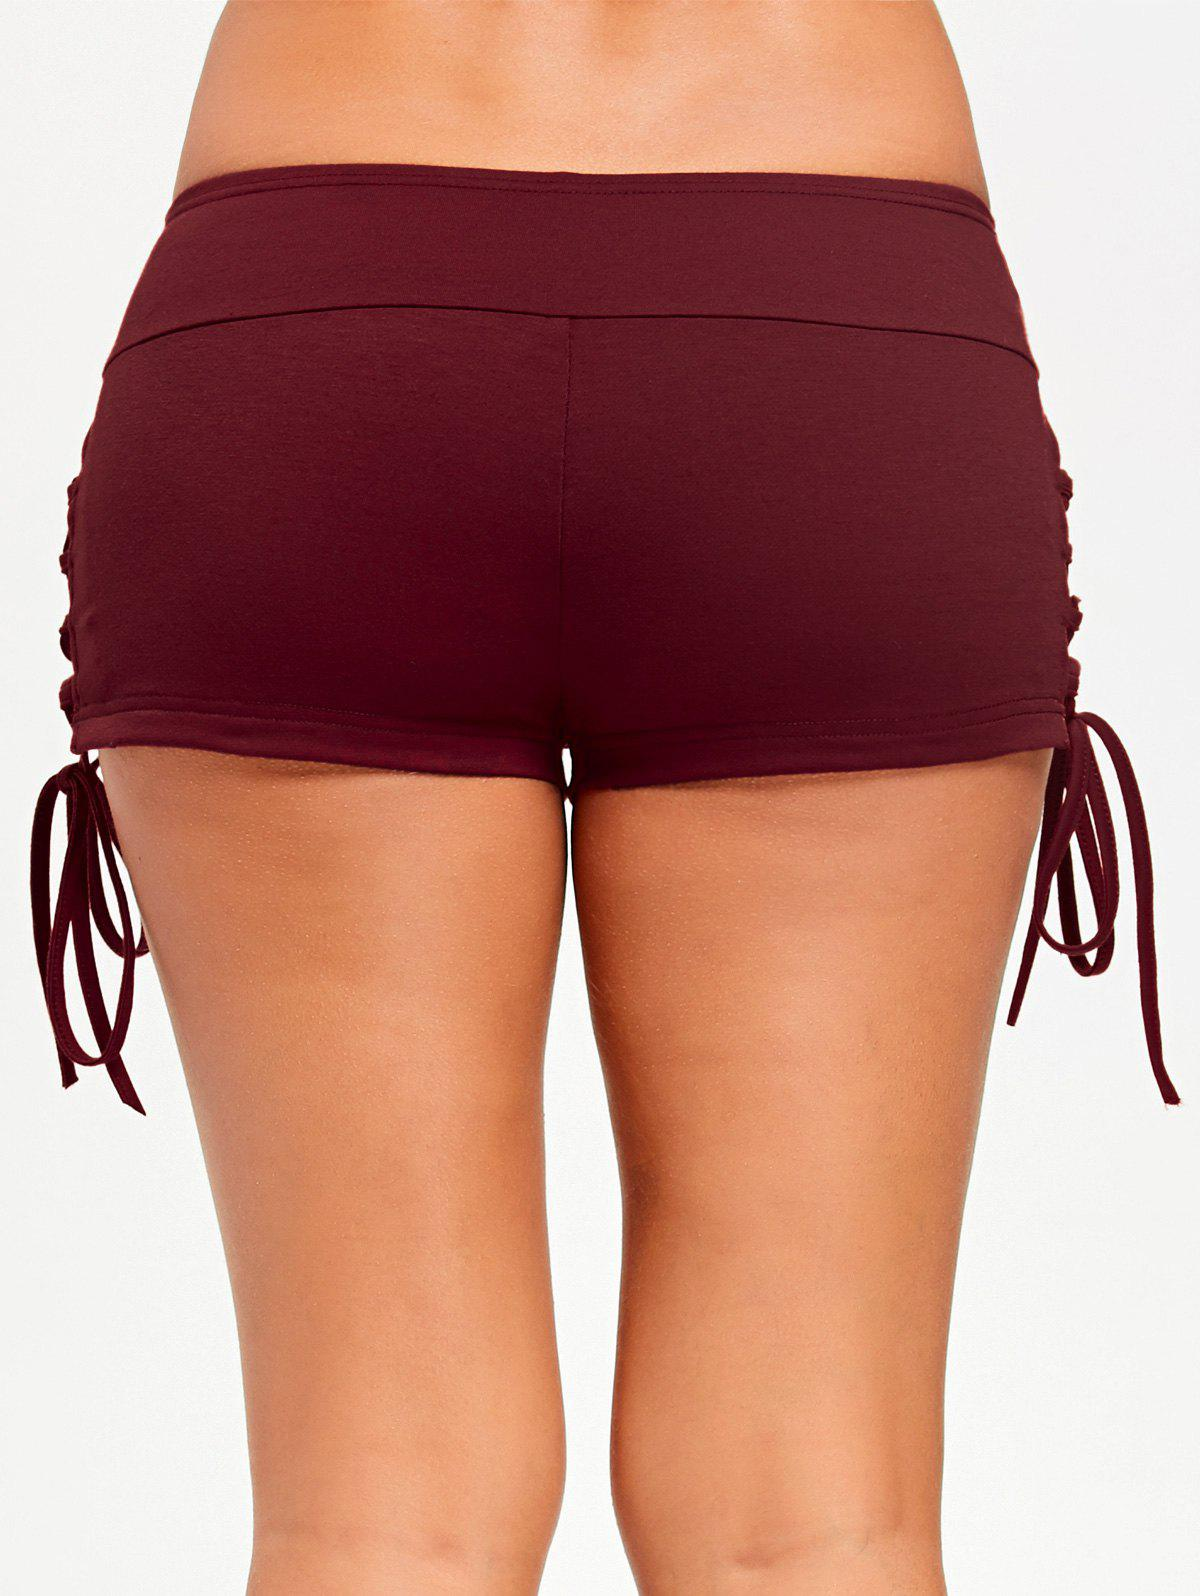 Lace Up Micro Shorts - LATERITE 2XL